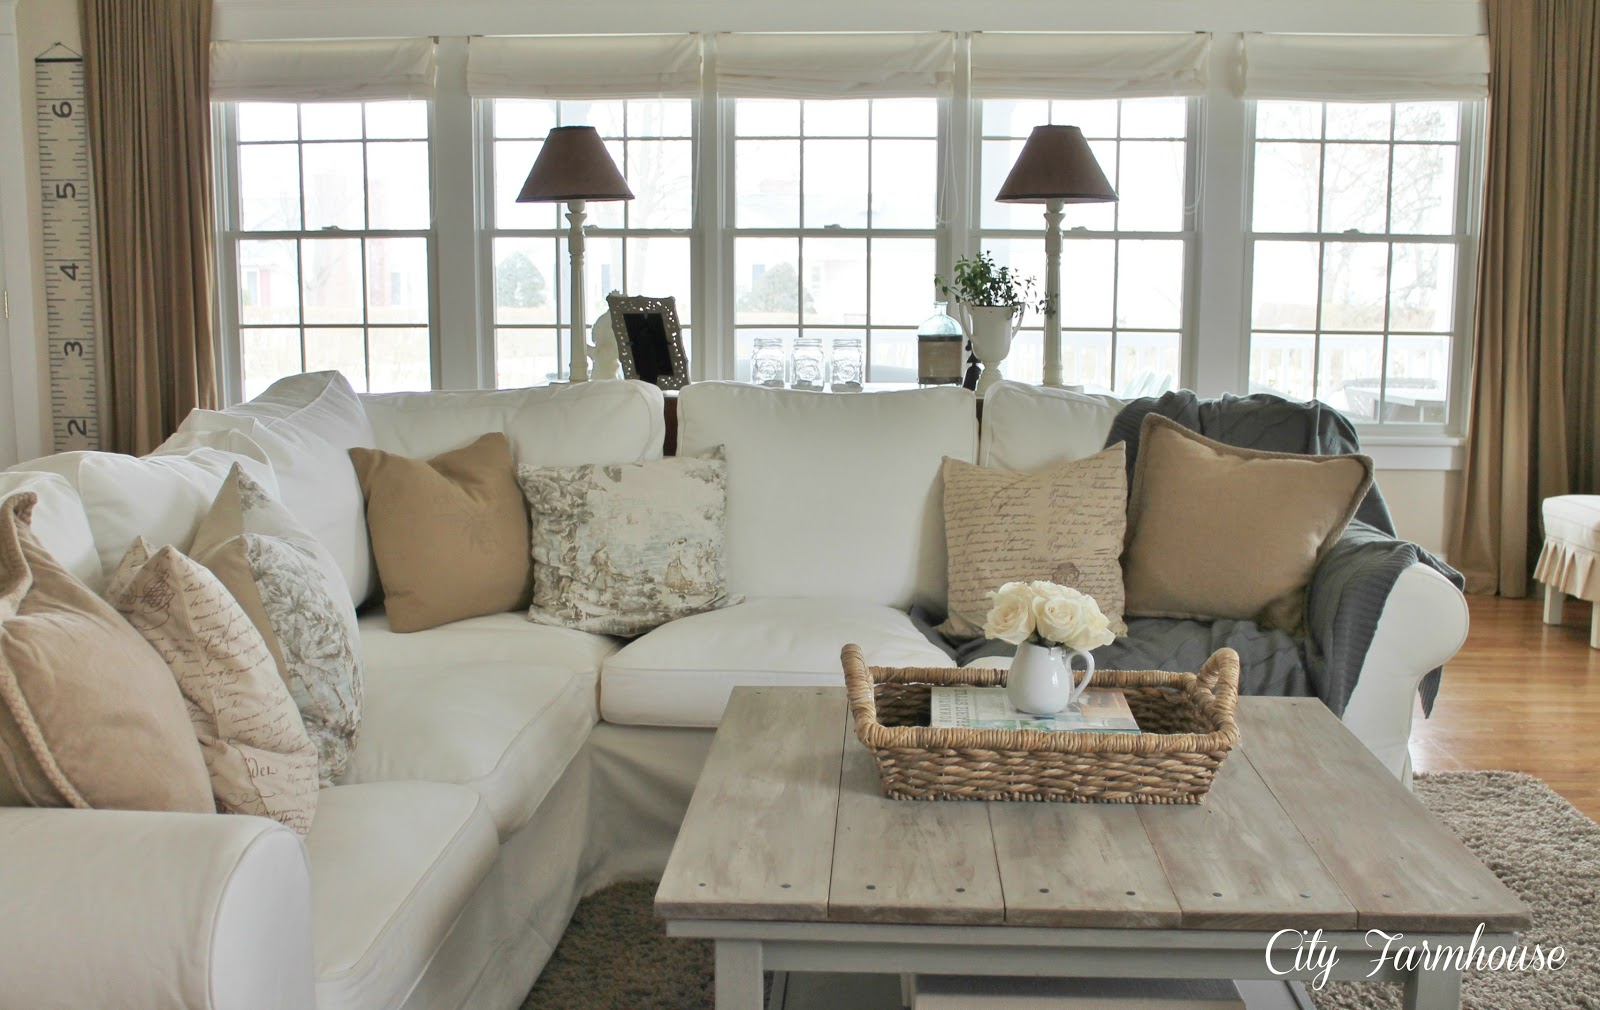 Family room reveal thrifty pretty functional city farmhouse - Family living room ideas ...